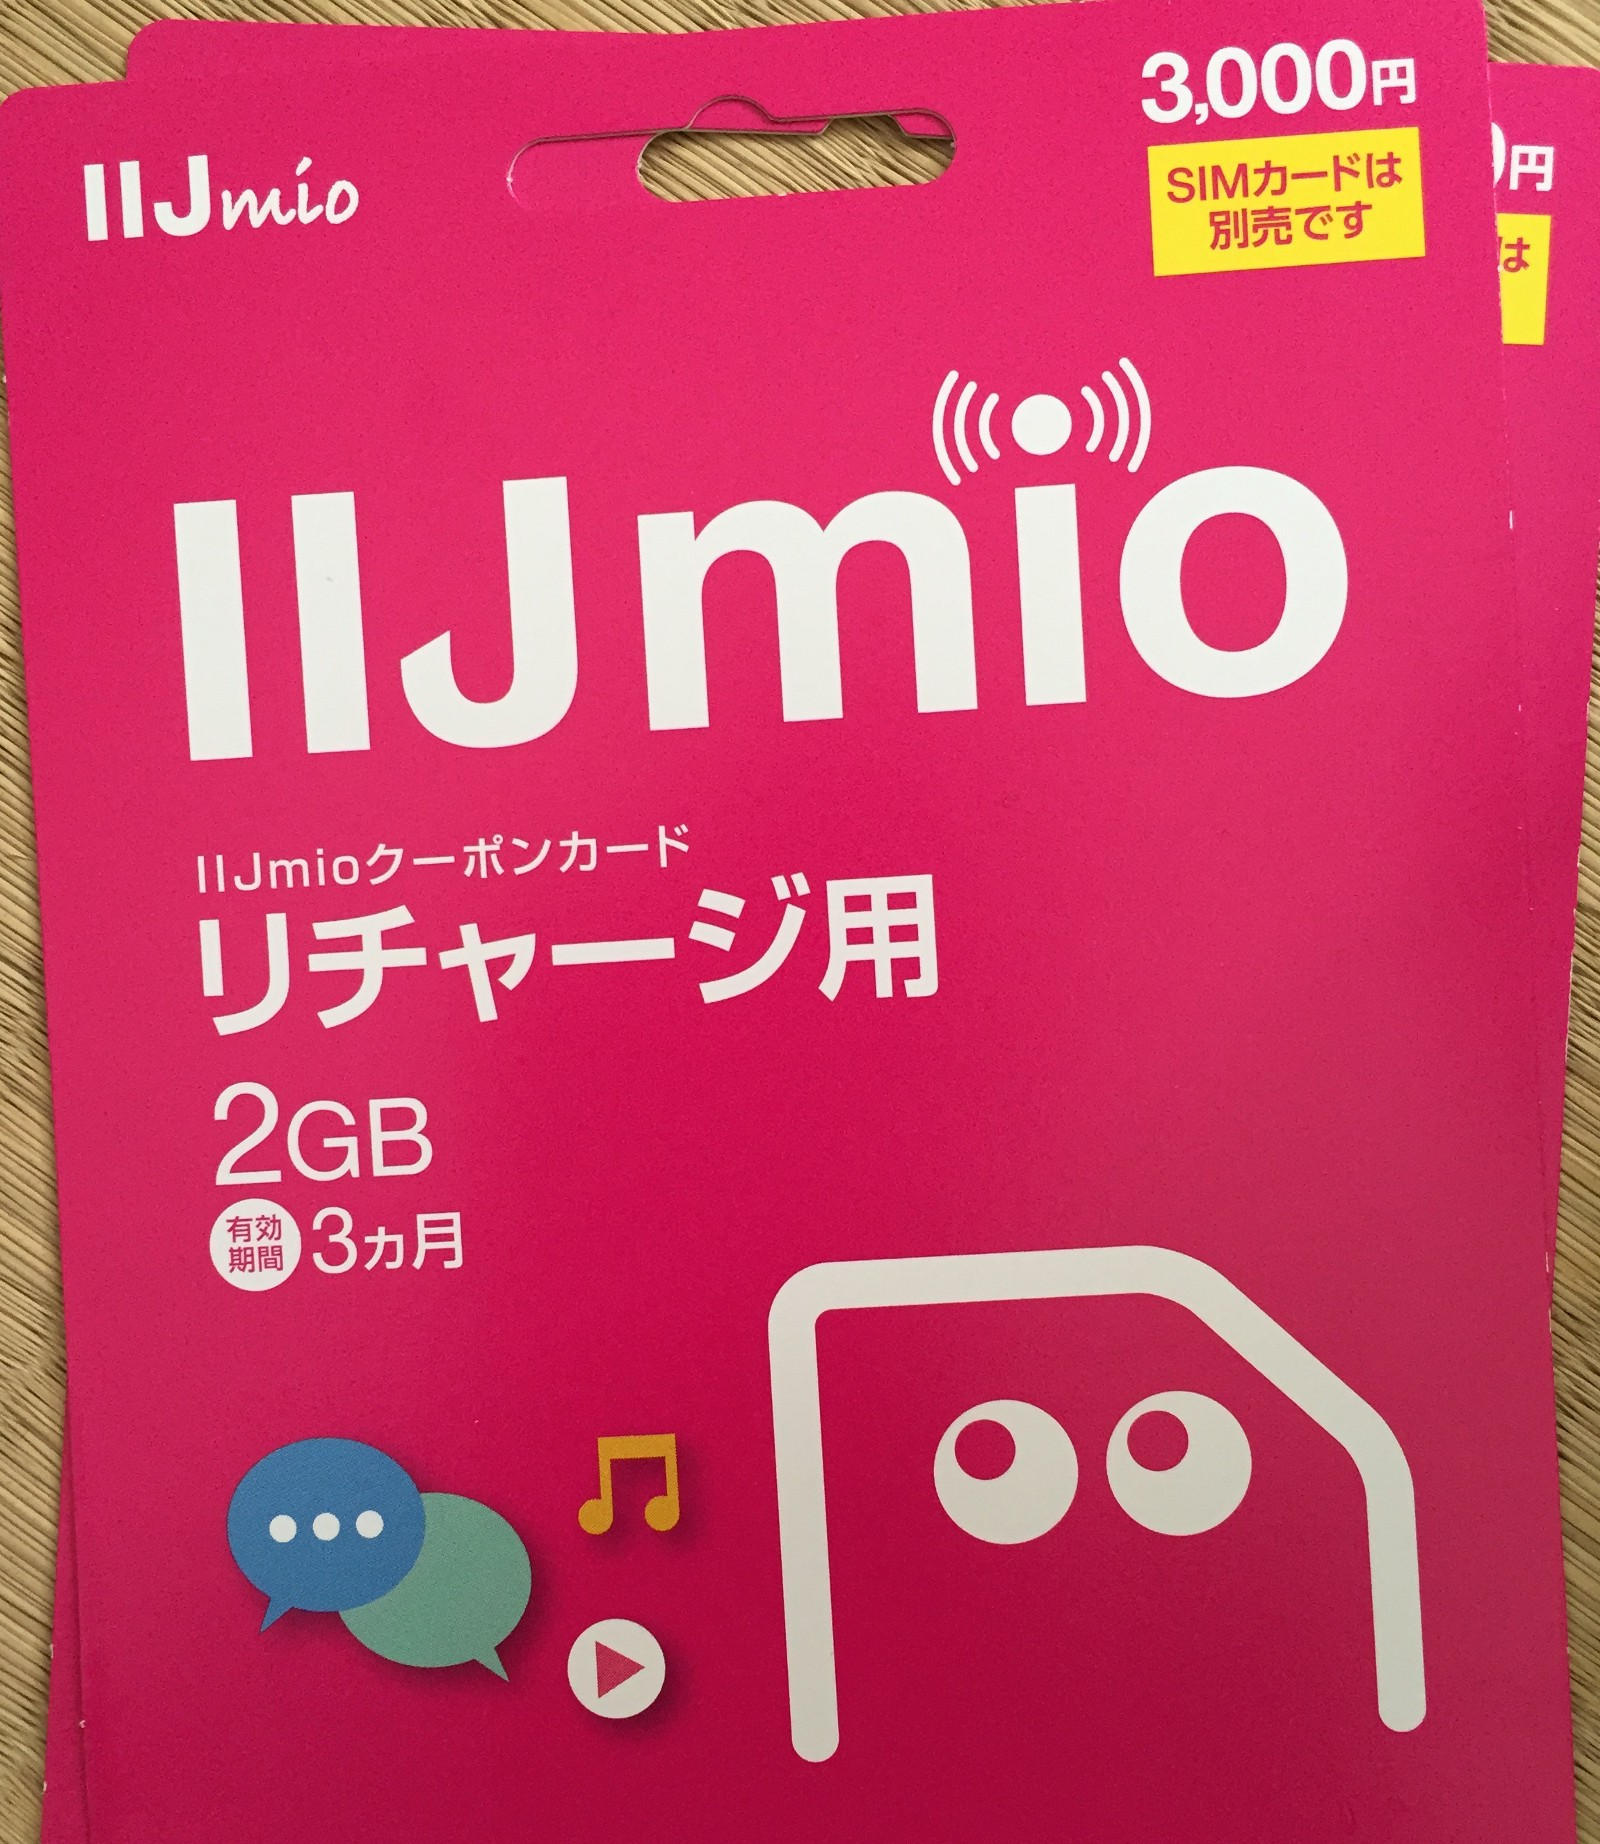 How To Internet In Japan Justin Searls Medium Voucher 3 1gb These Cards Have A Scratch Off Coupon Code On The Back Which Can Be Used At Iijmio Support Site Keep Mind That Lawson Will Probably Decline